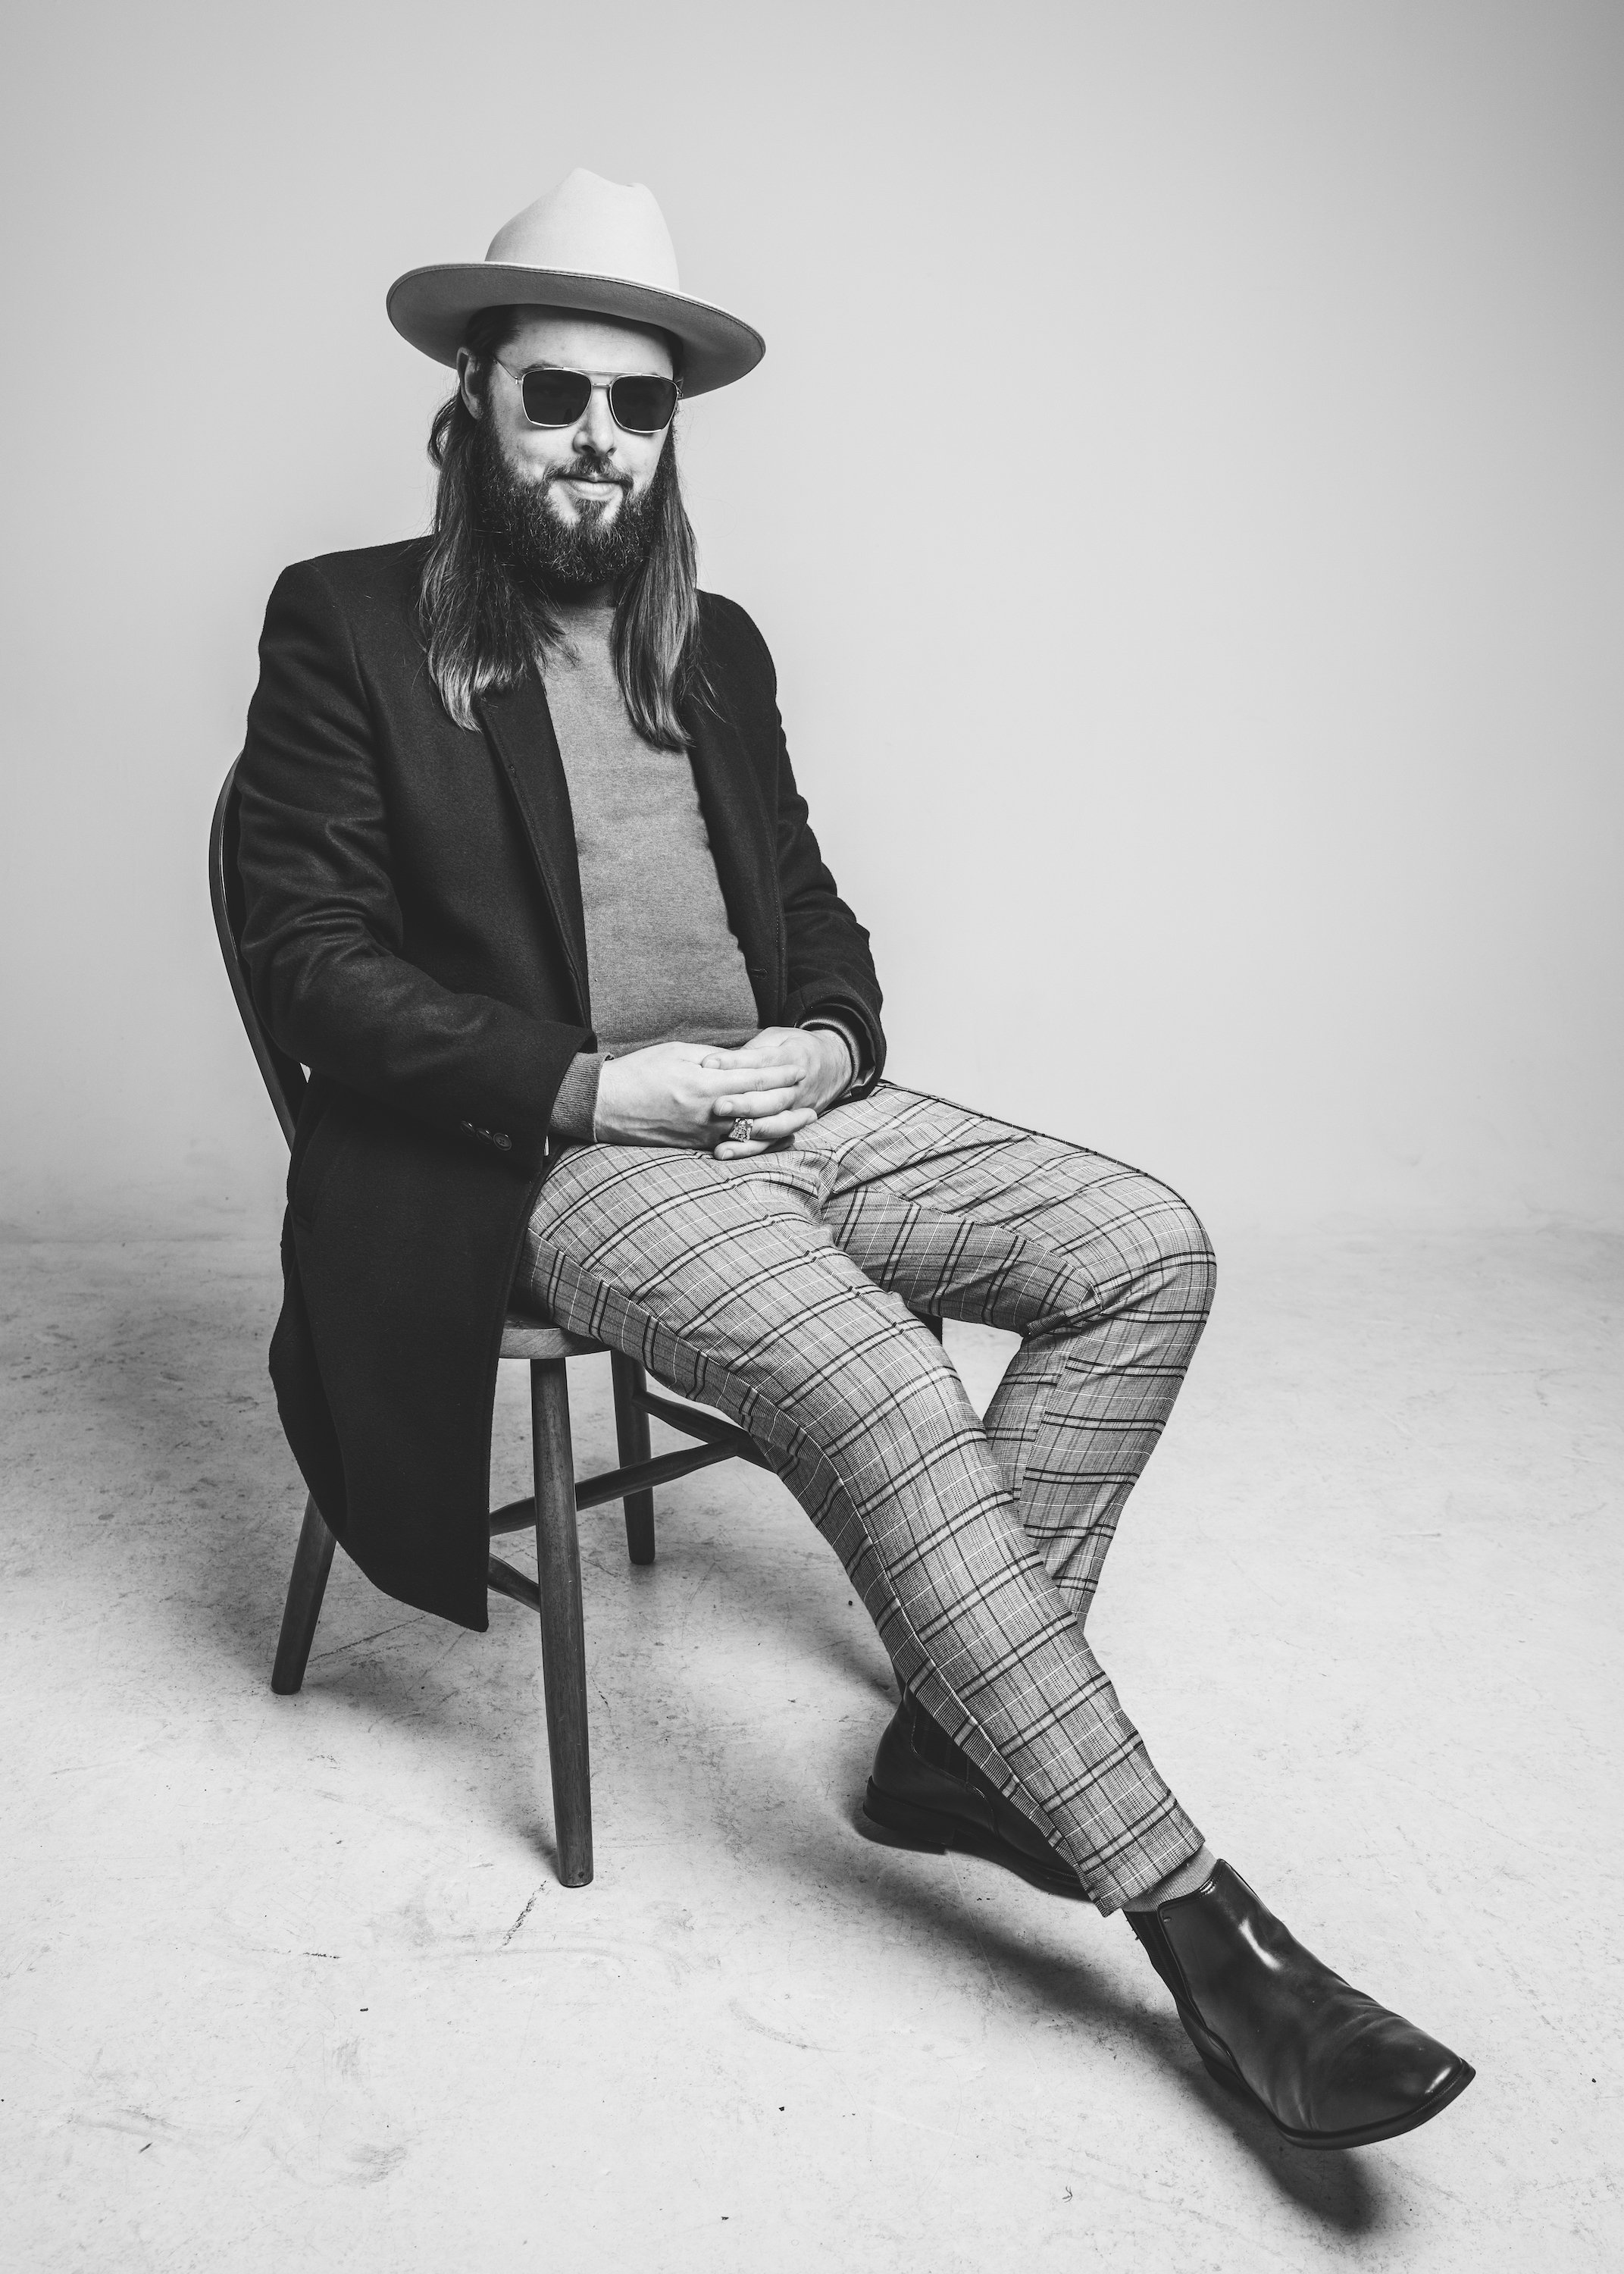 New Music from Caleb Caudle